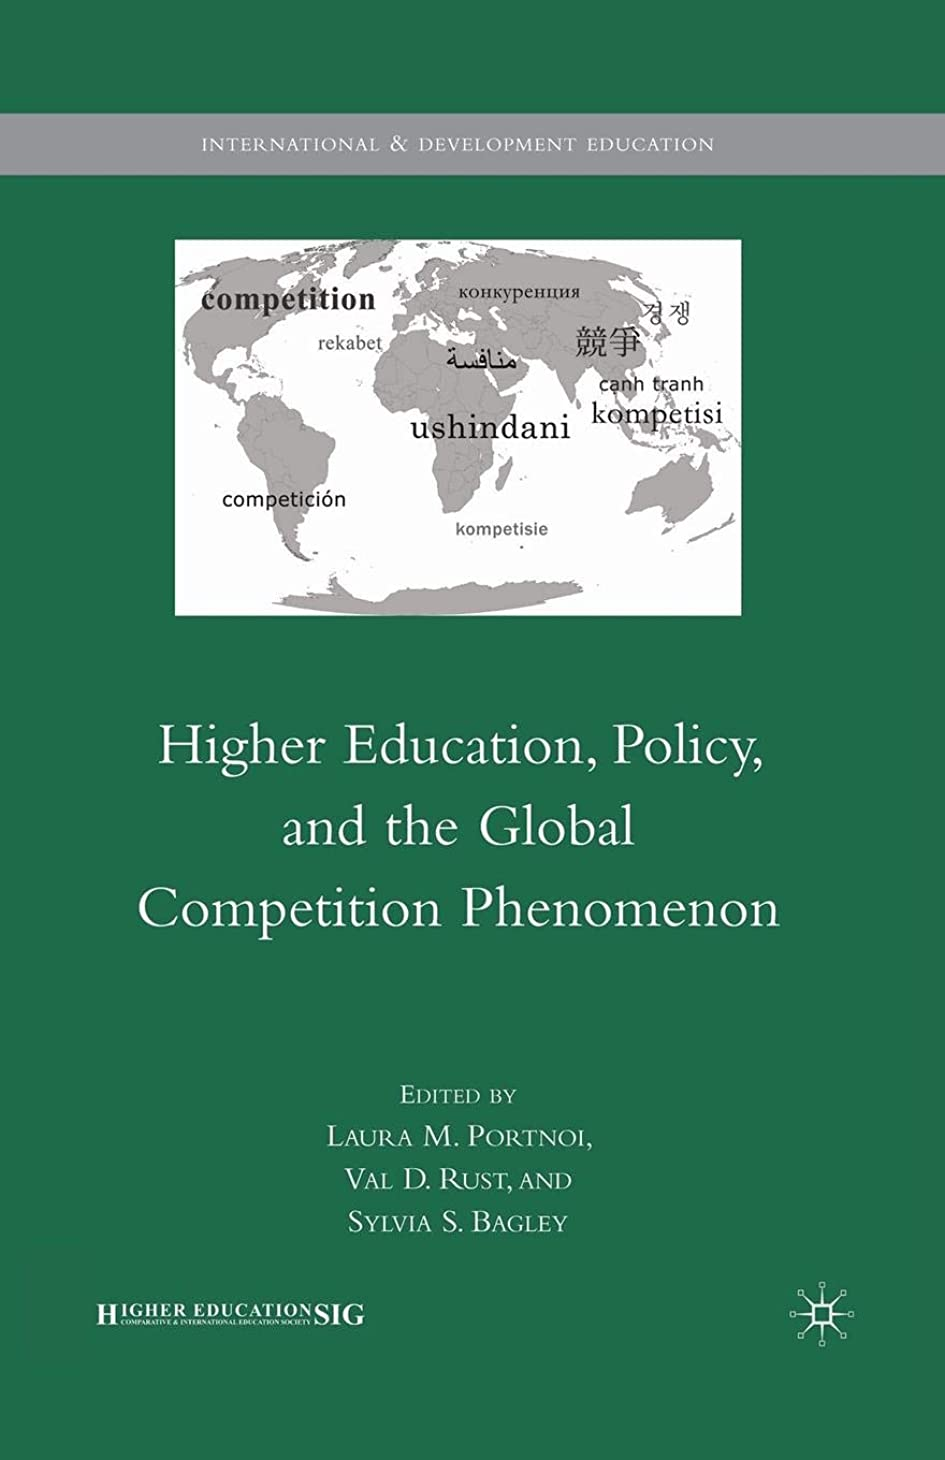 混合した石炭愛情深いHigher Education, Policy, and the Global Competition Phenomenon (International and Development Education)